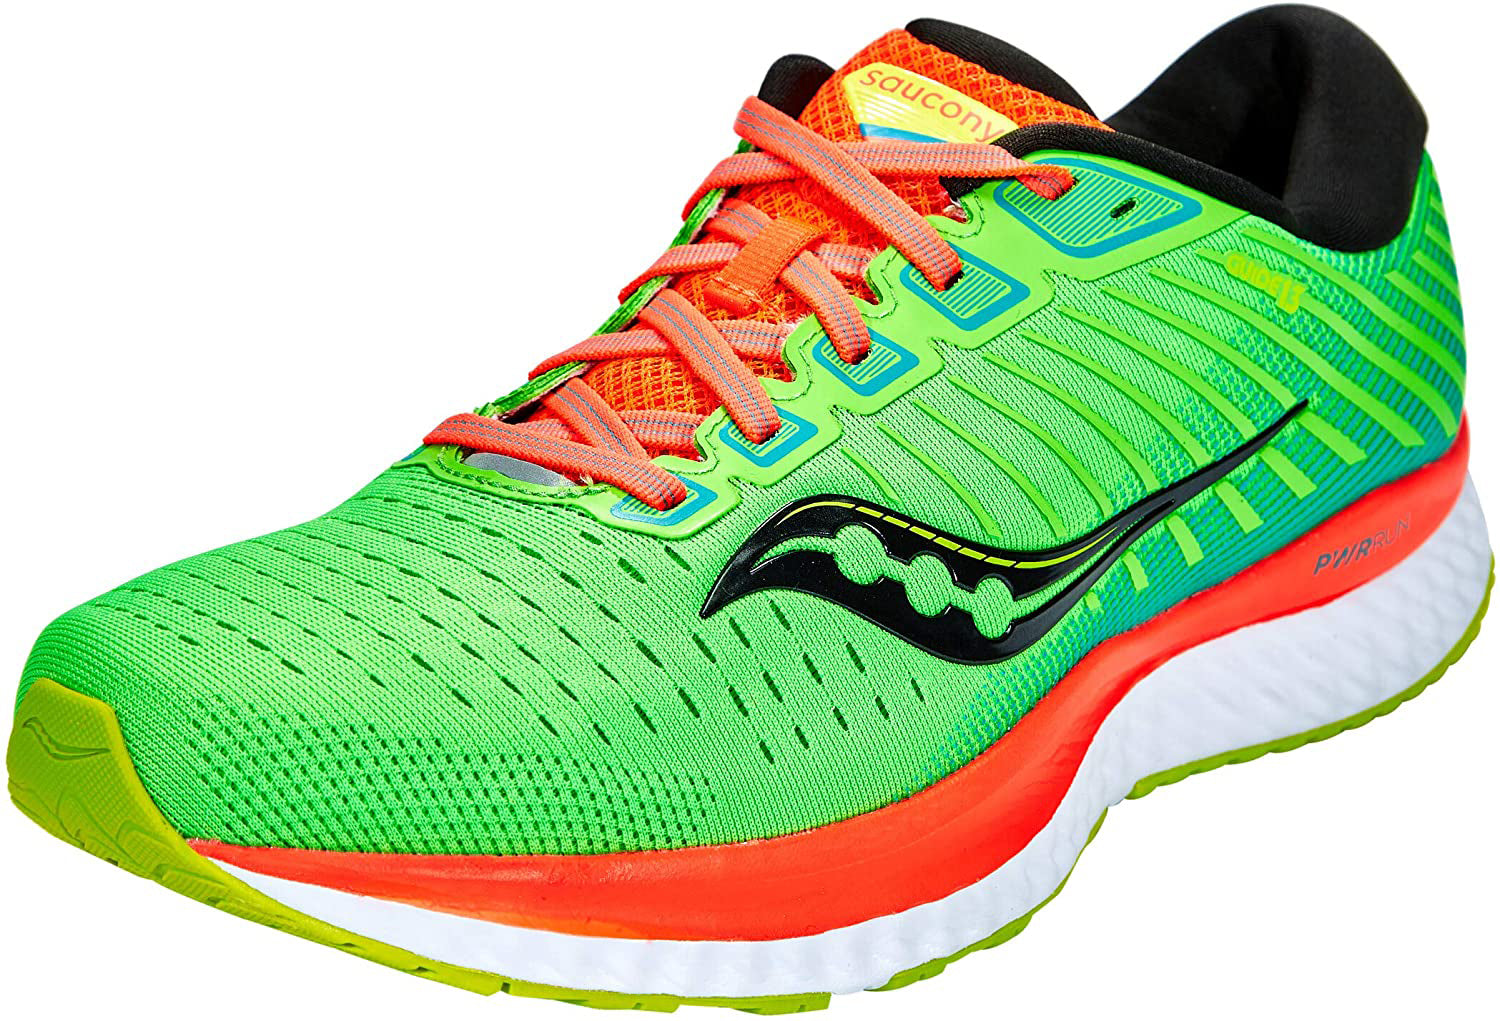 Saucony Men's Guide 13 Running Shoe in Green Mutant Side Angle View